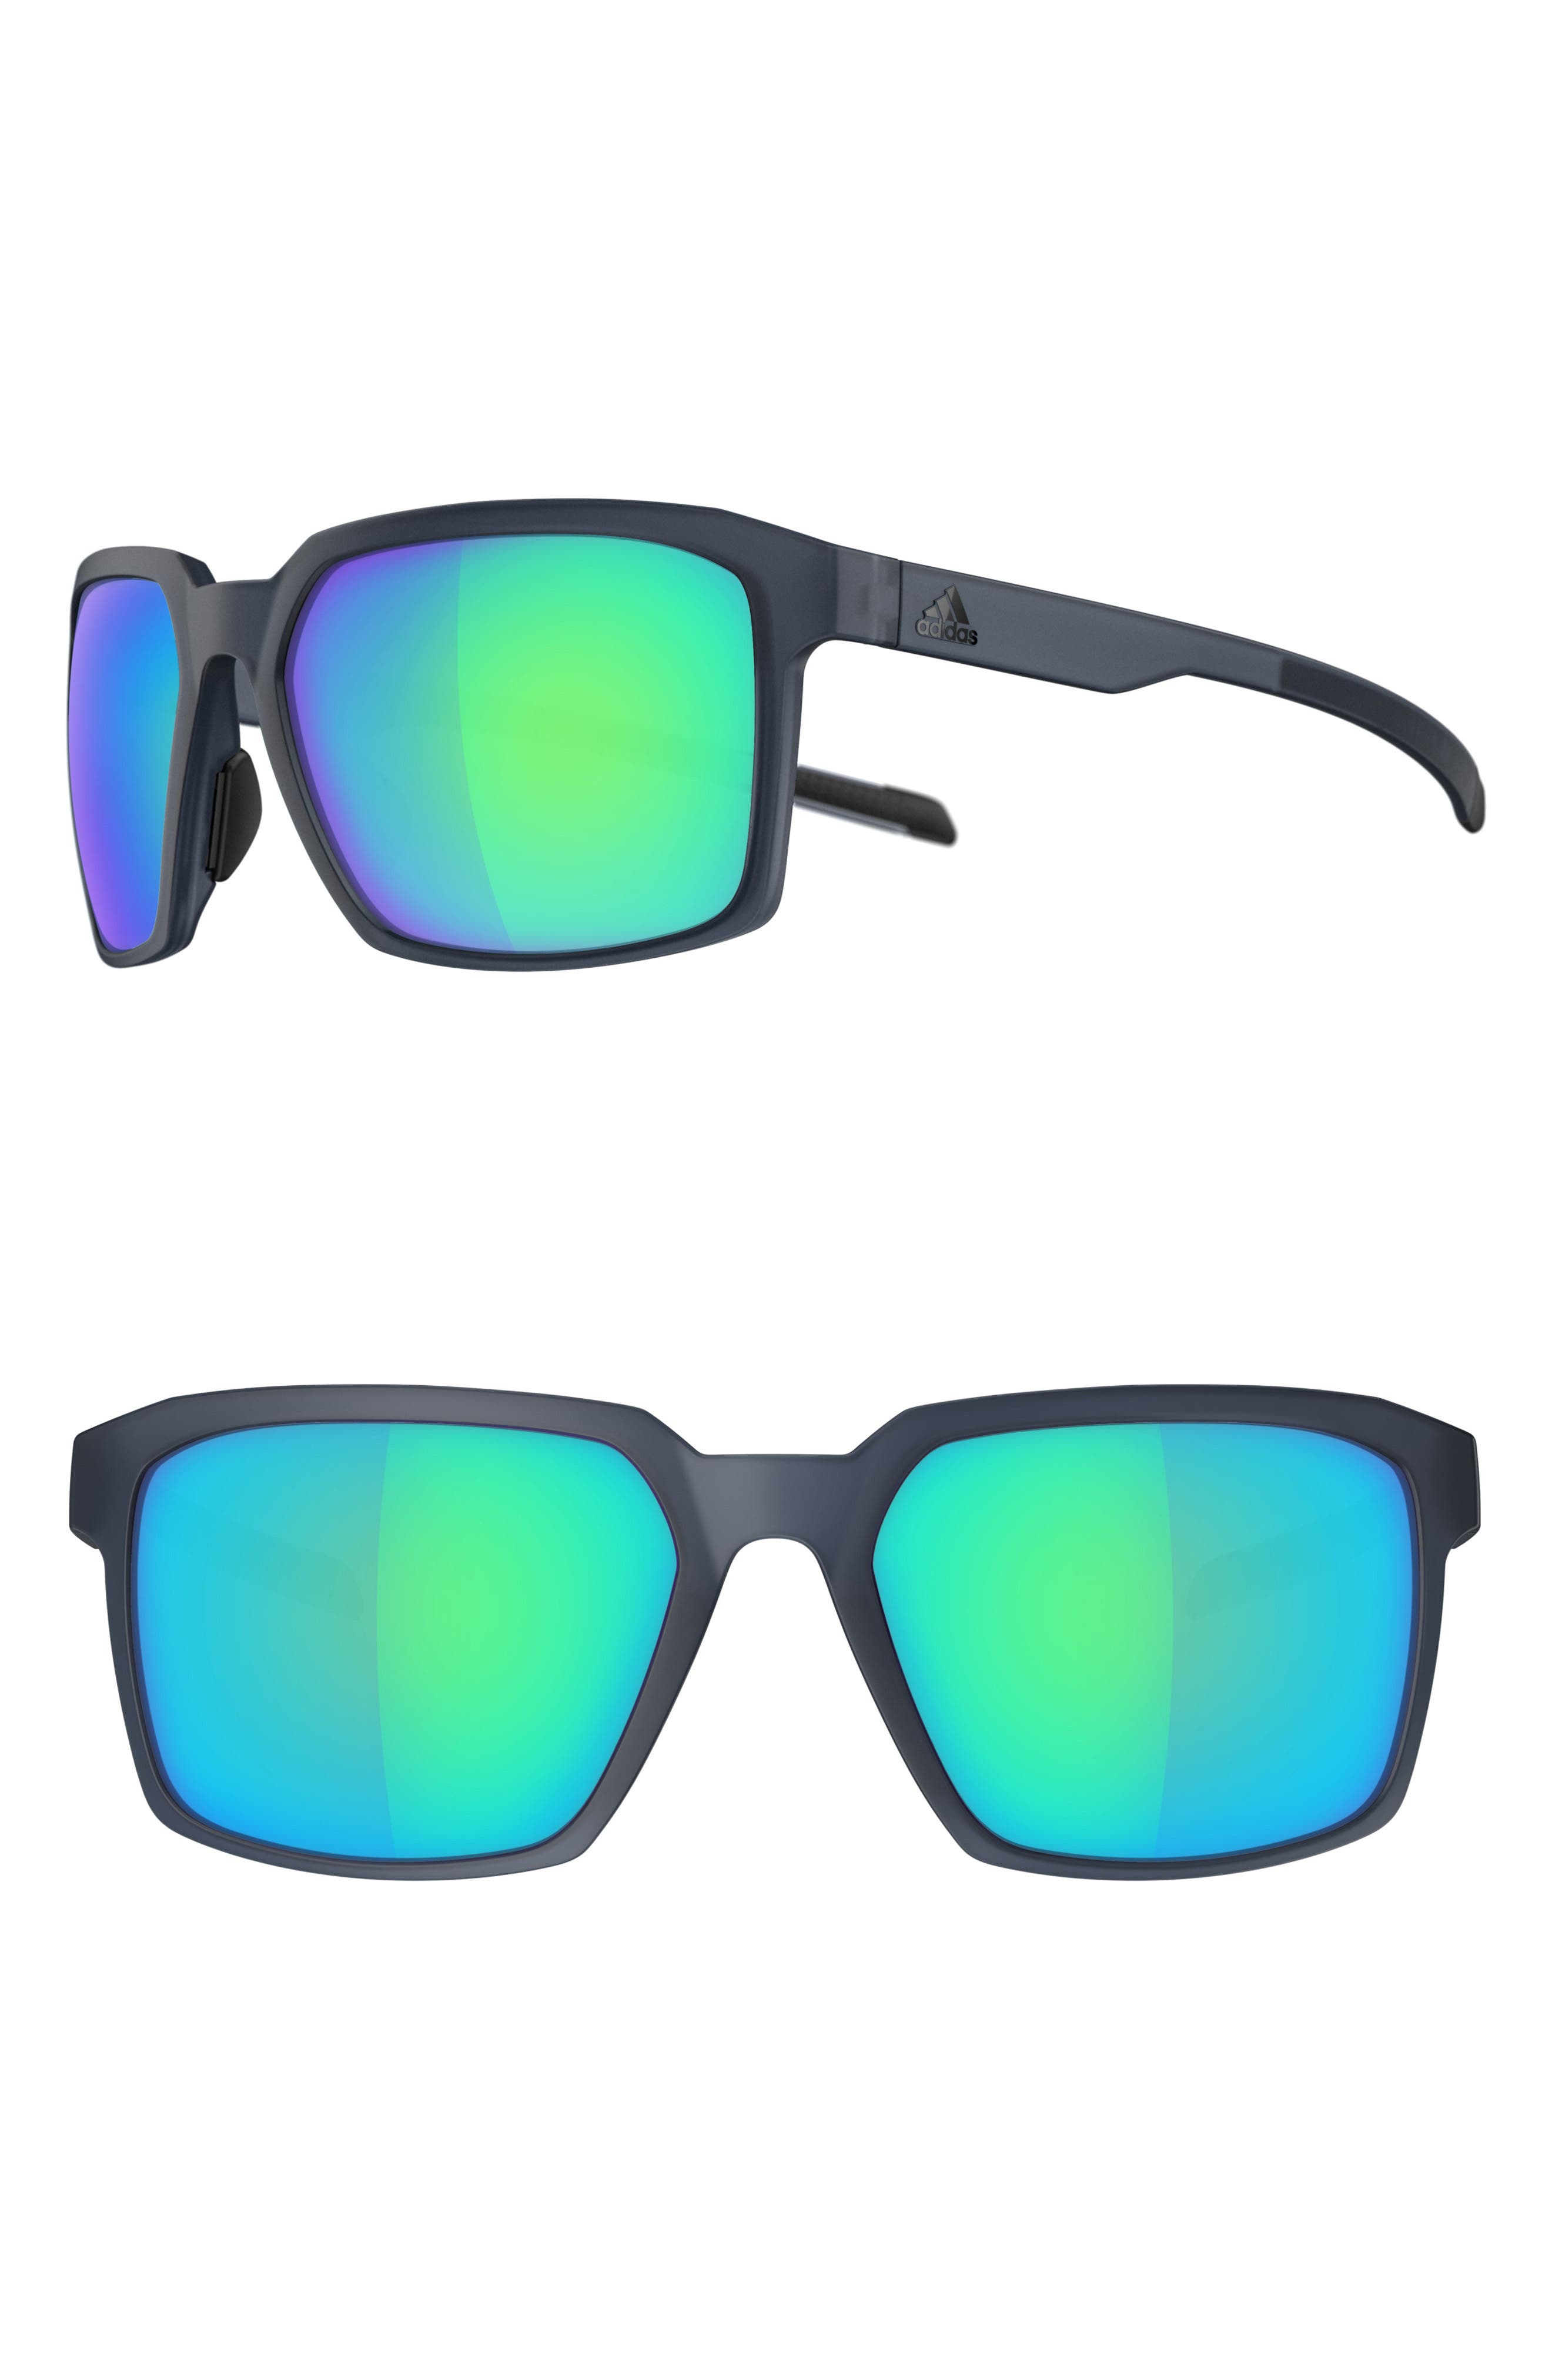 Evolver 60mm Mirrored Sunglasses,                             Main thumbnail 1, color,                             MATTE RAW STEEL/ BLUE